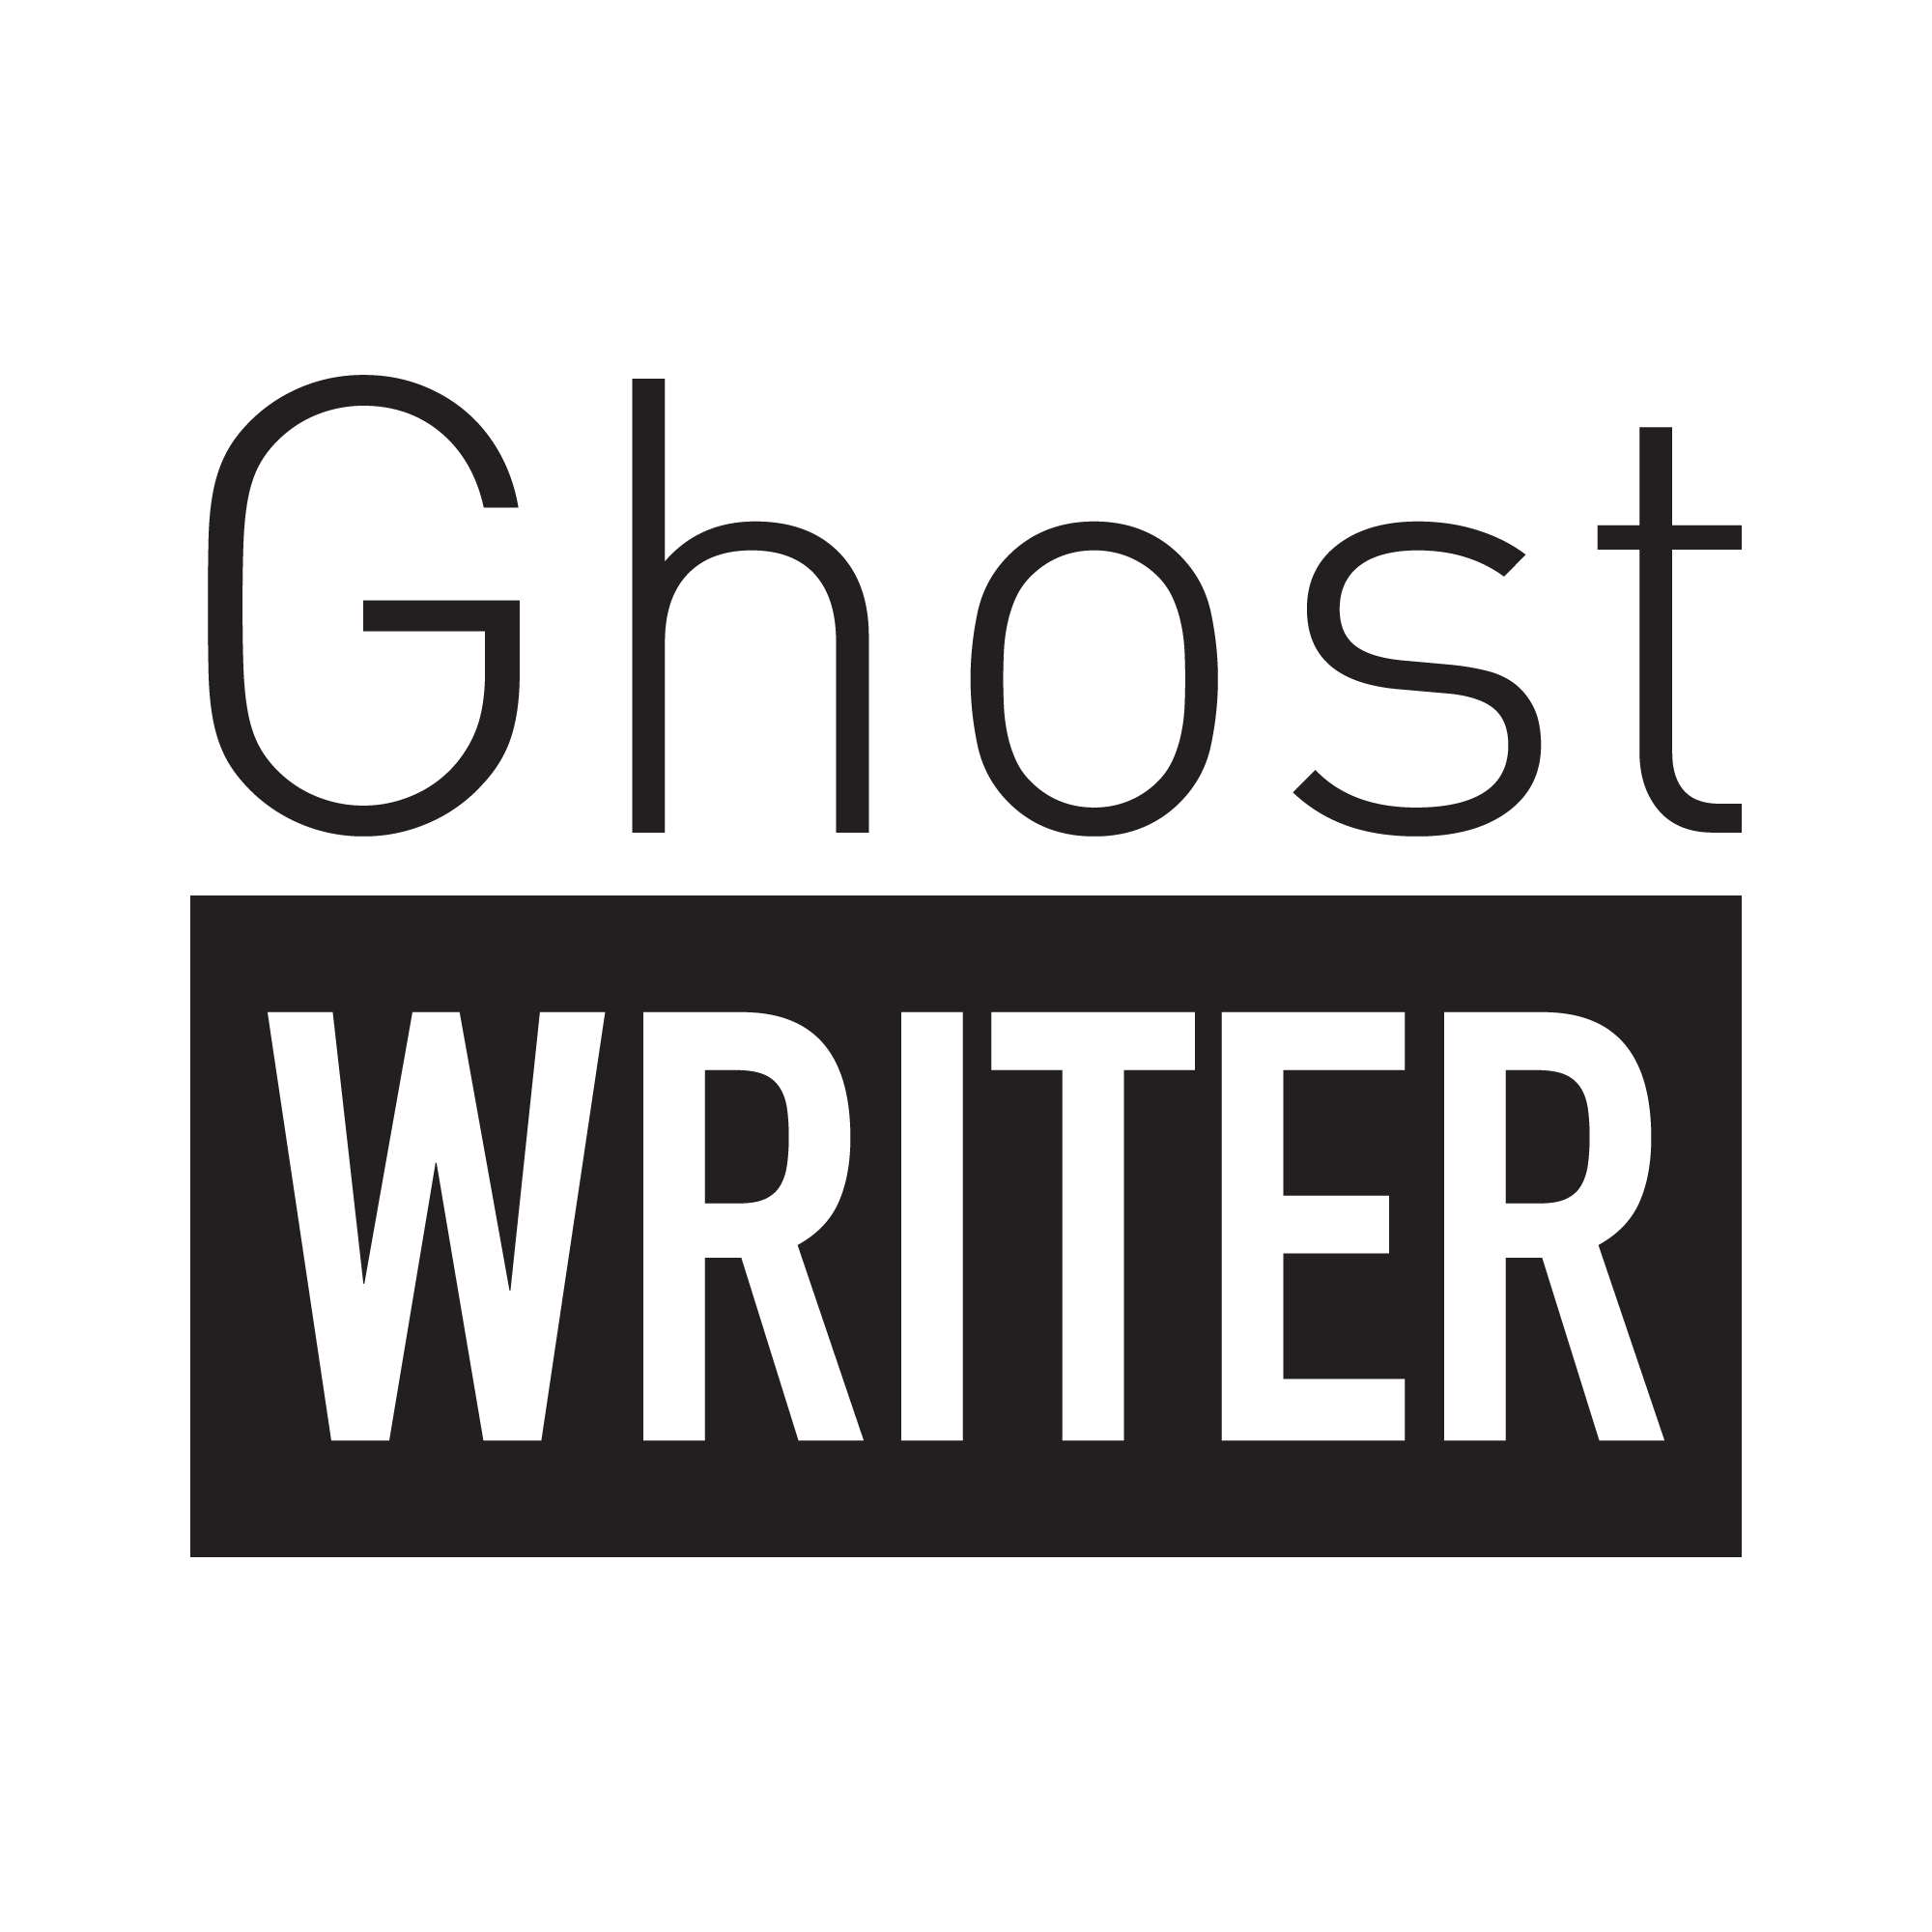 Ghoast writer